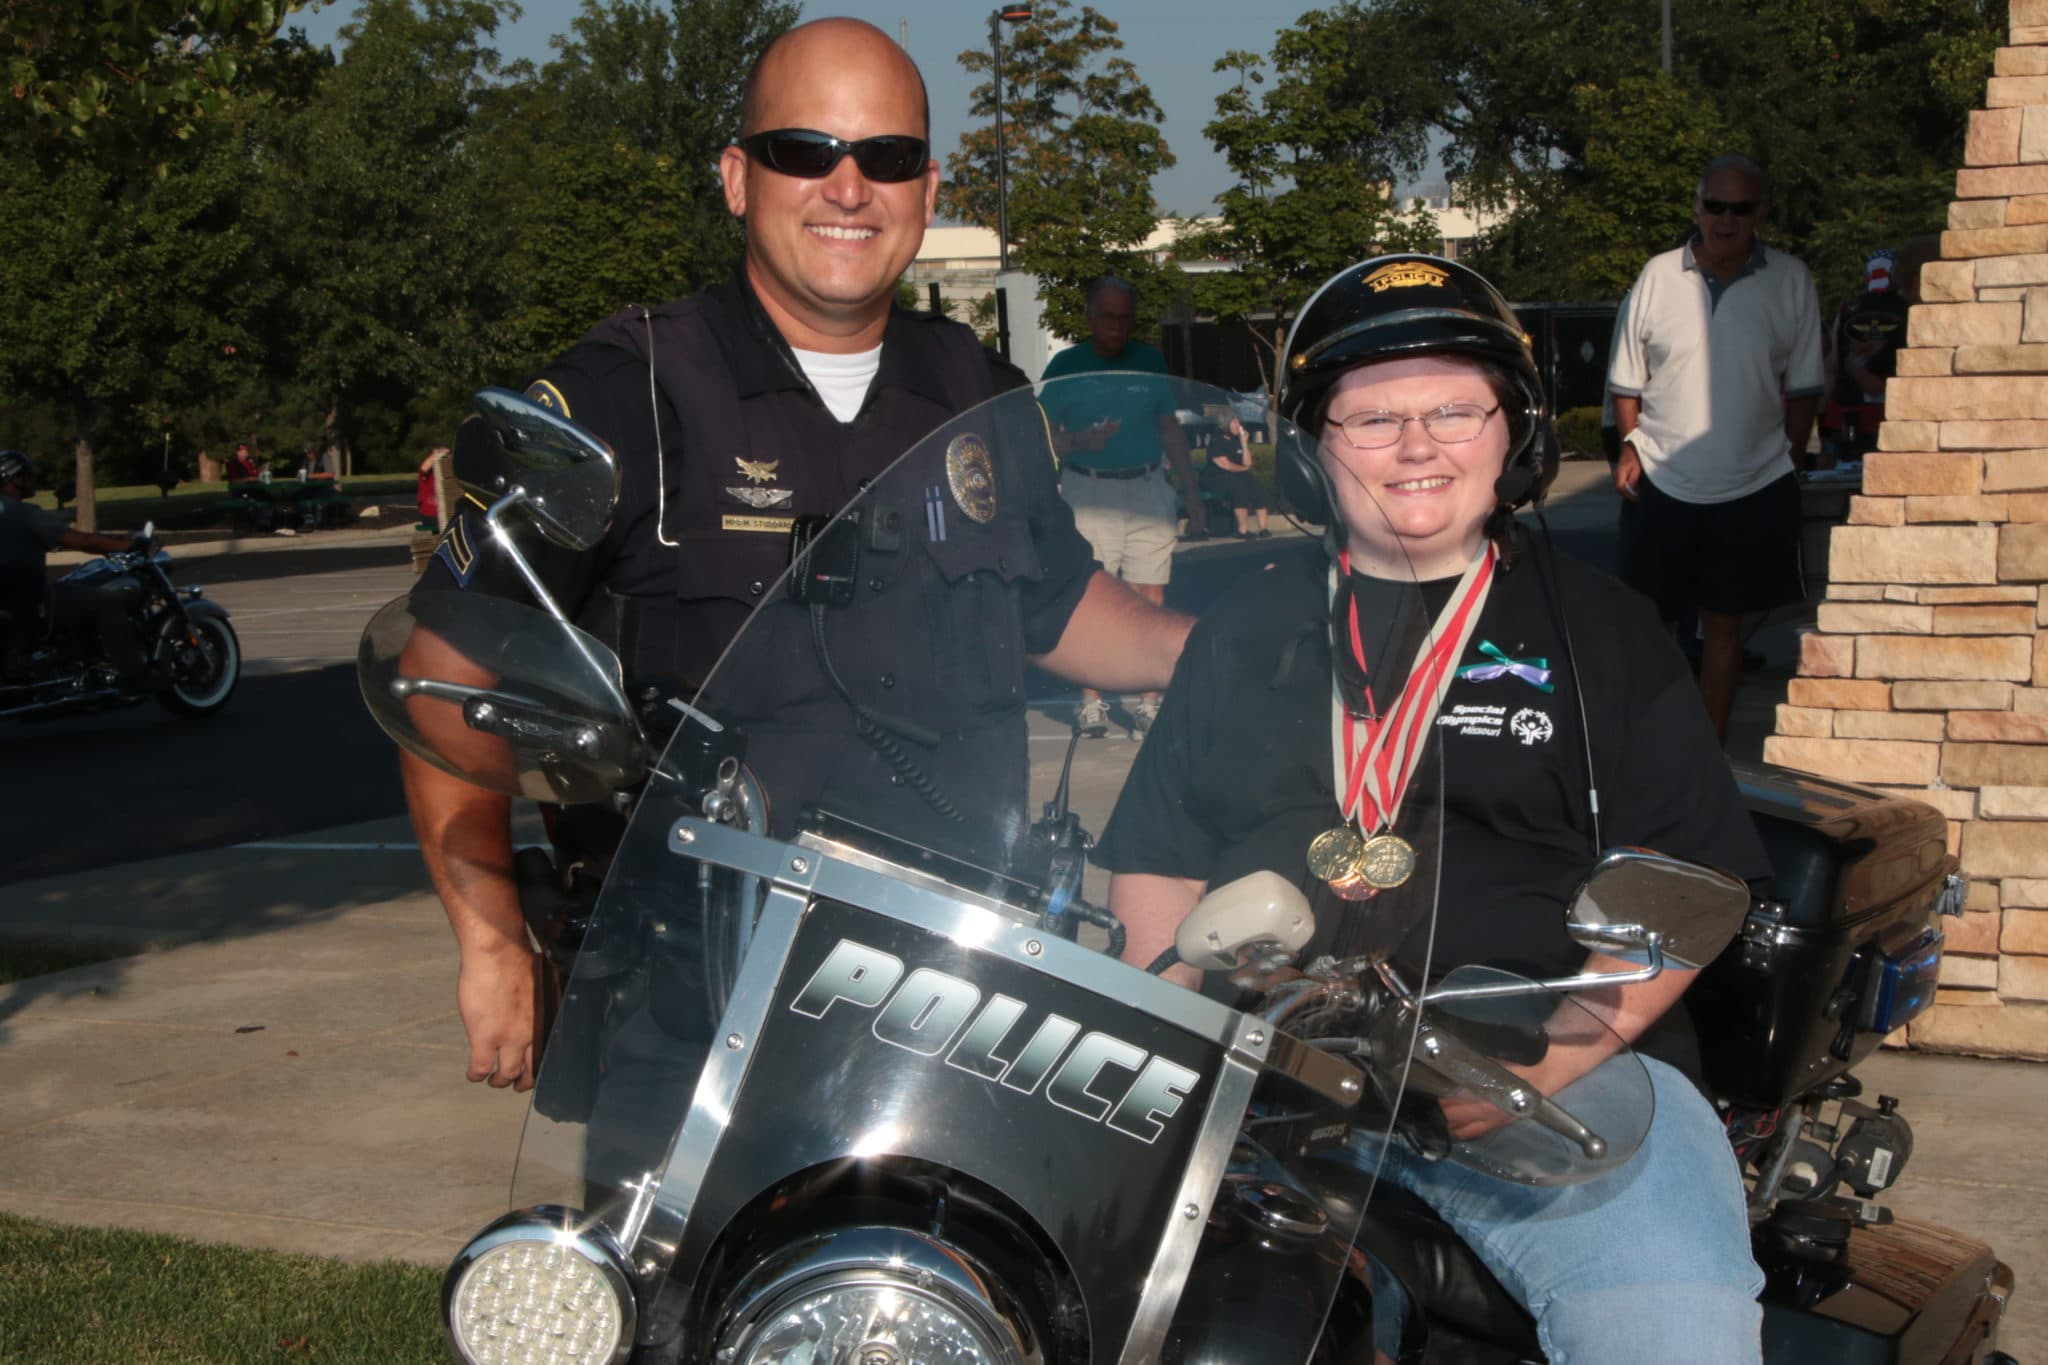 An athlete sits on a motorcycle and poses for a photo with a law enforcement officer